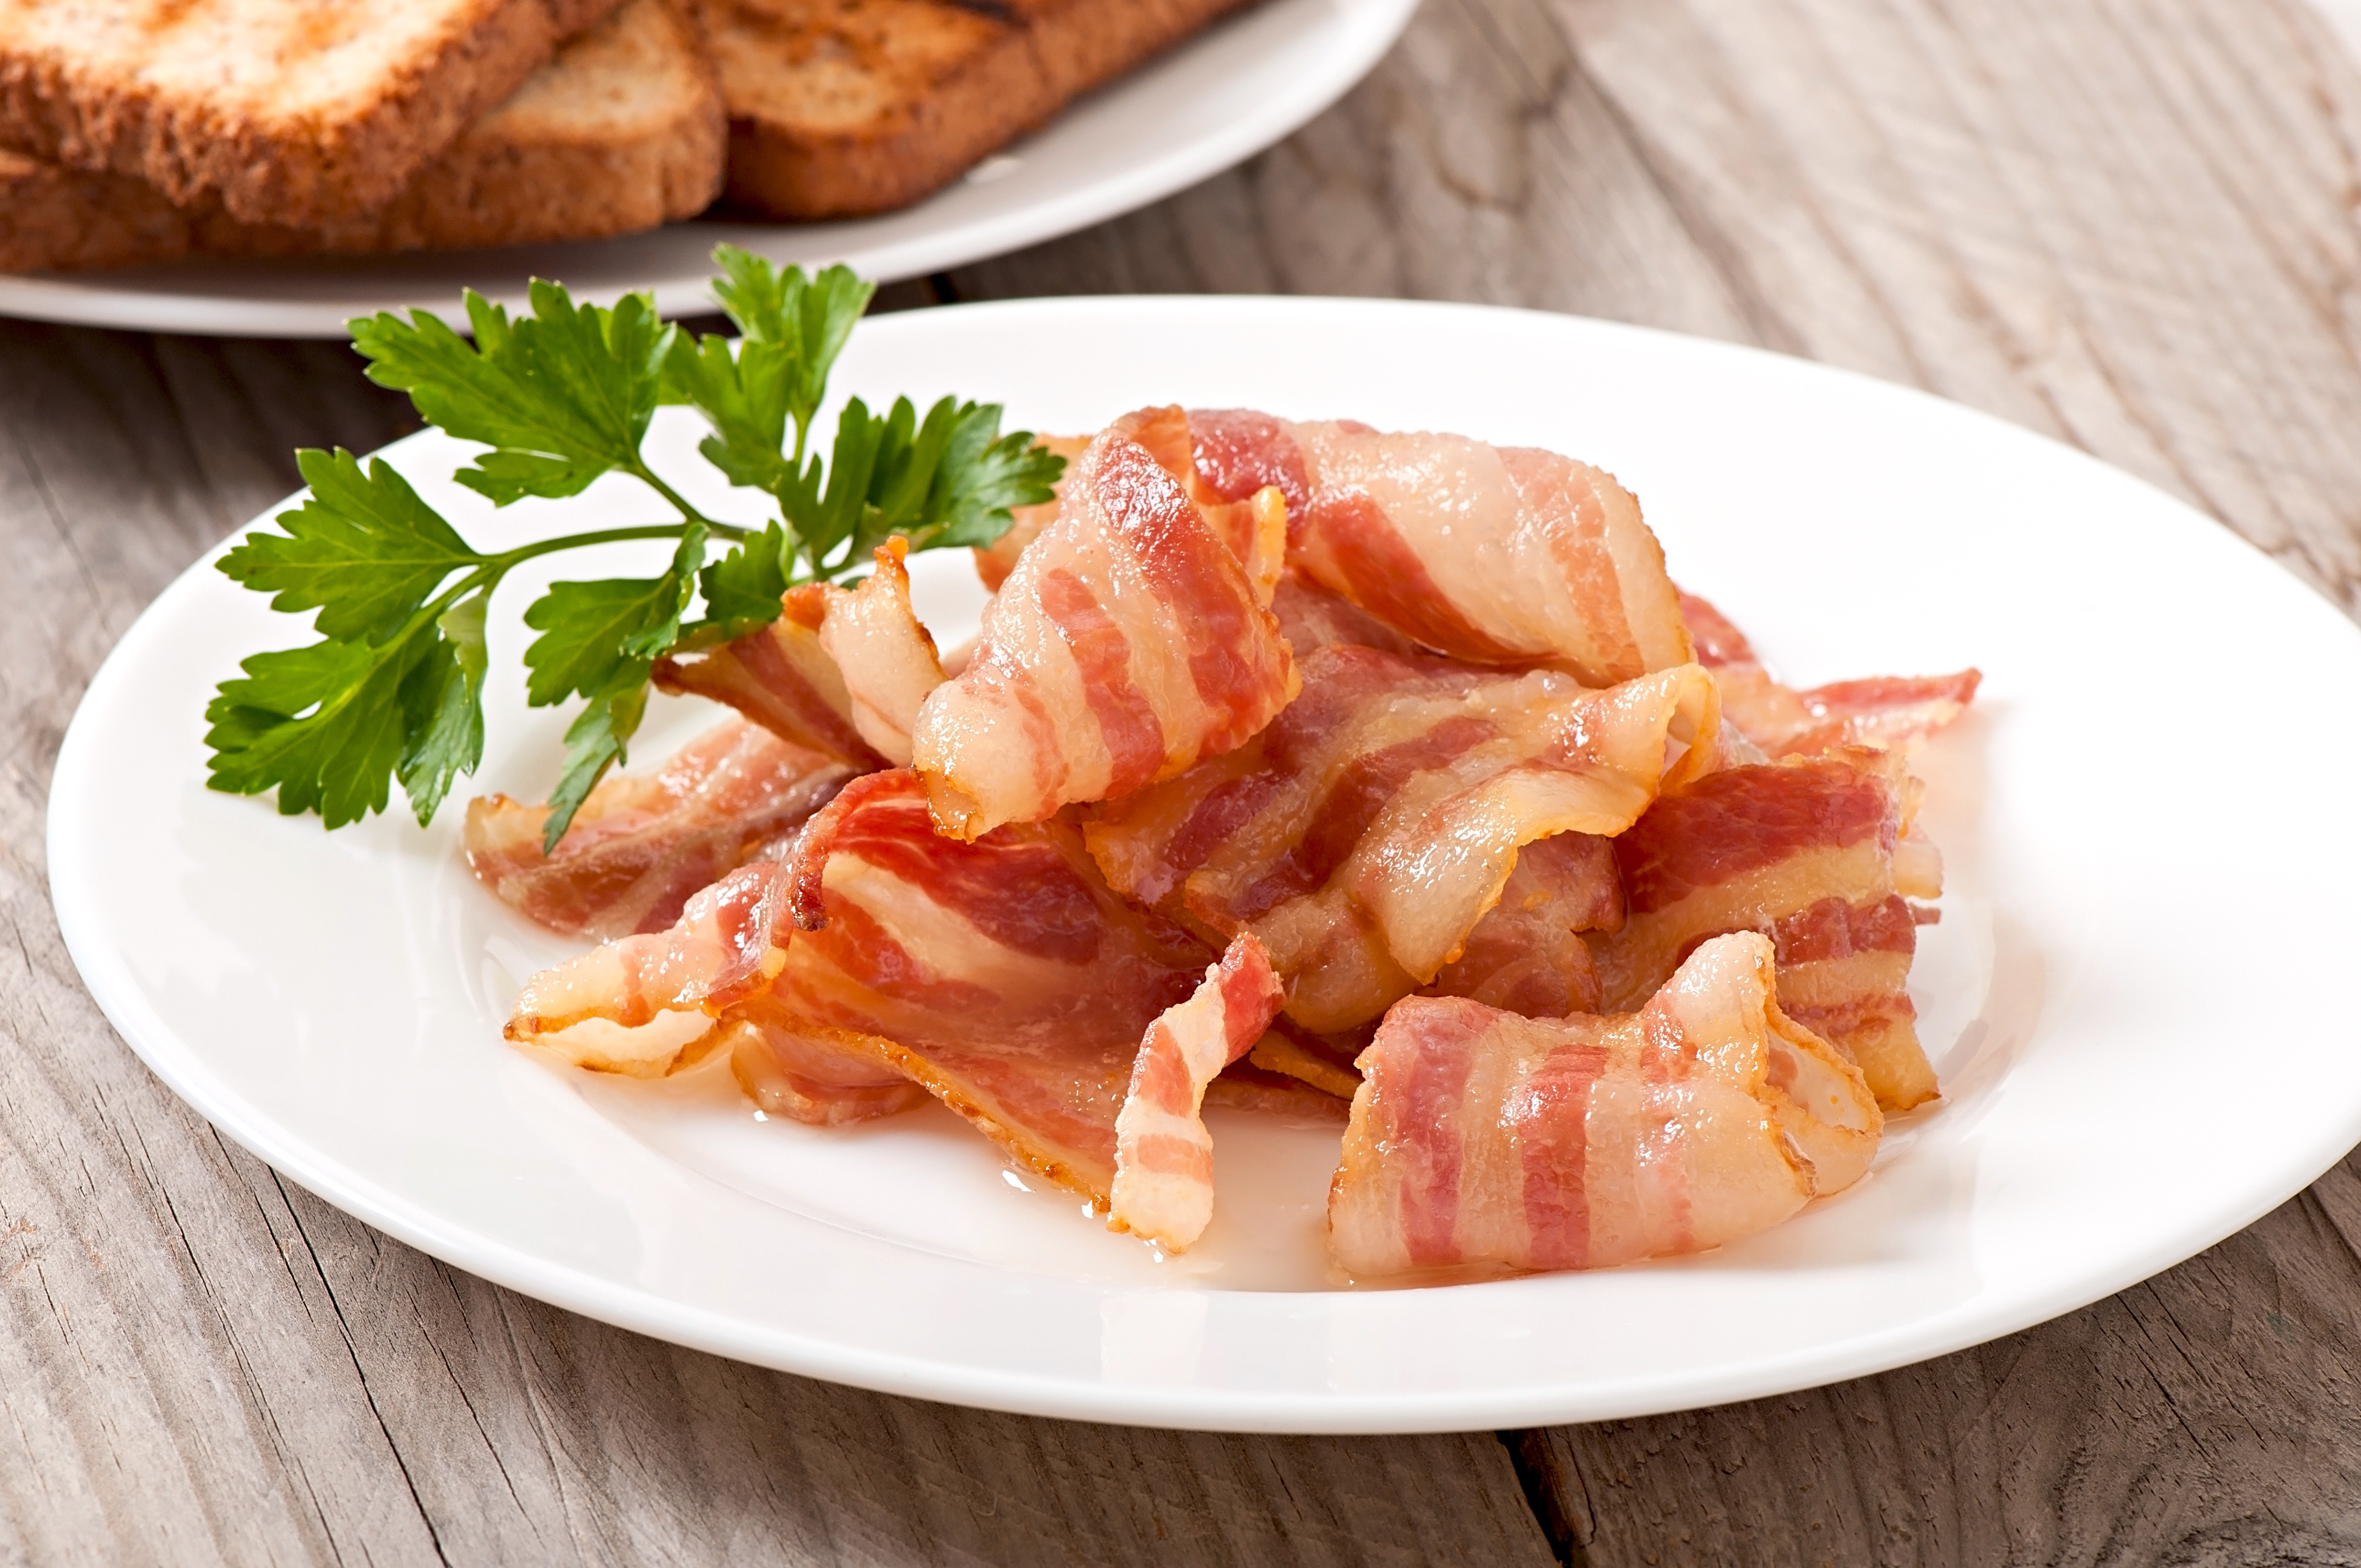 Bacon Meat 55589